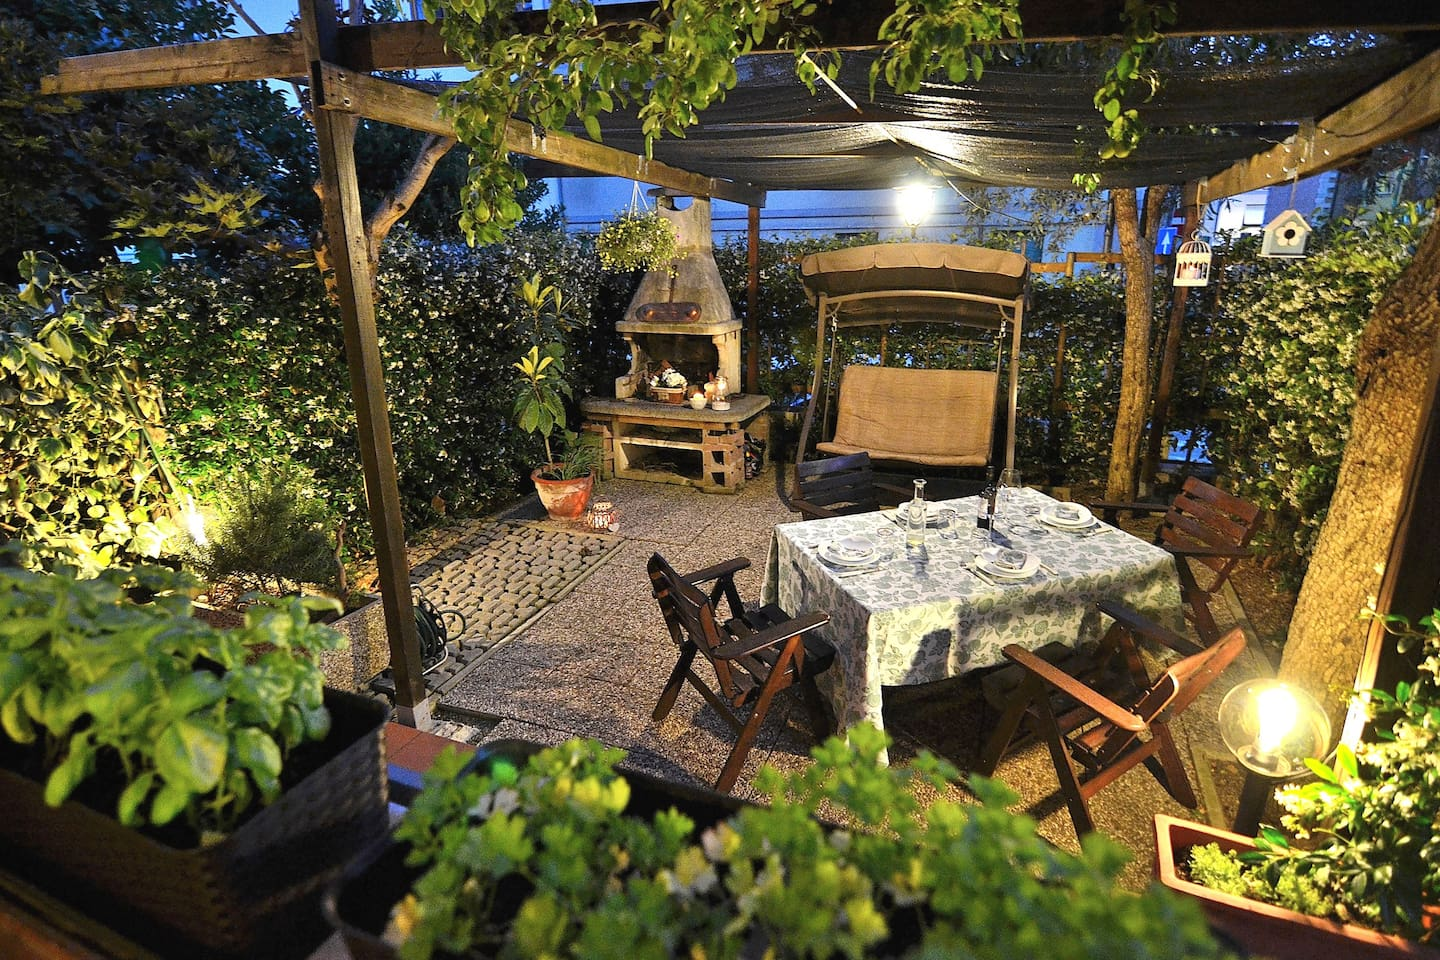 Garden at your disposal. We can prepare for you private Tuscan Dinner (On Request)